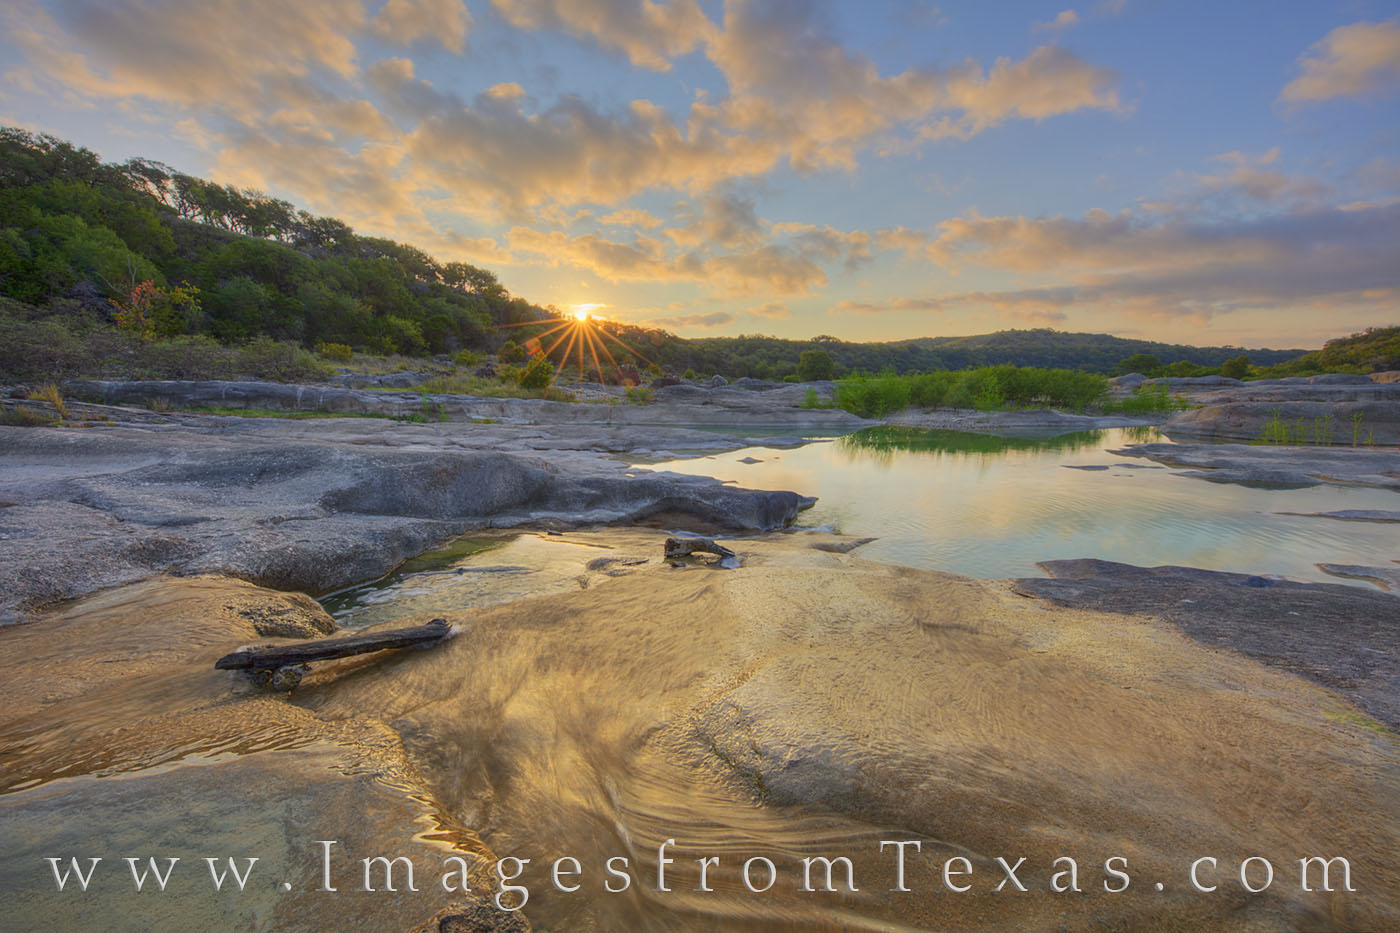 sunrise, pedernales river, hill country, texas rivers, pedernales falls, sunlight, morning, landscapes, photo